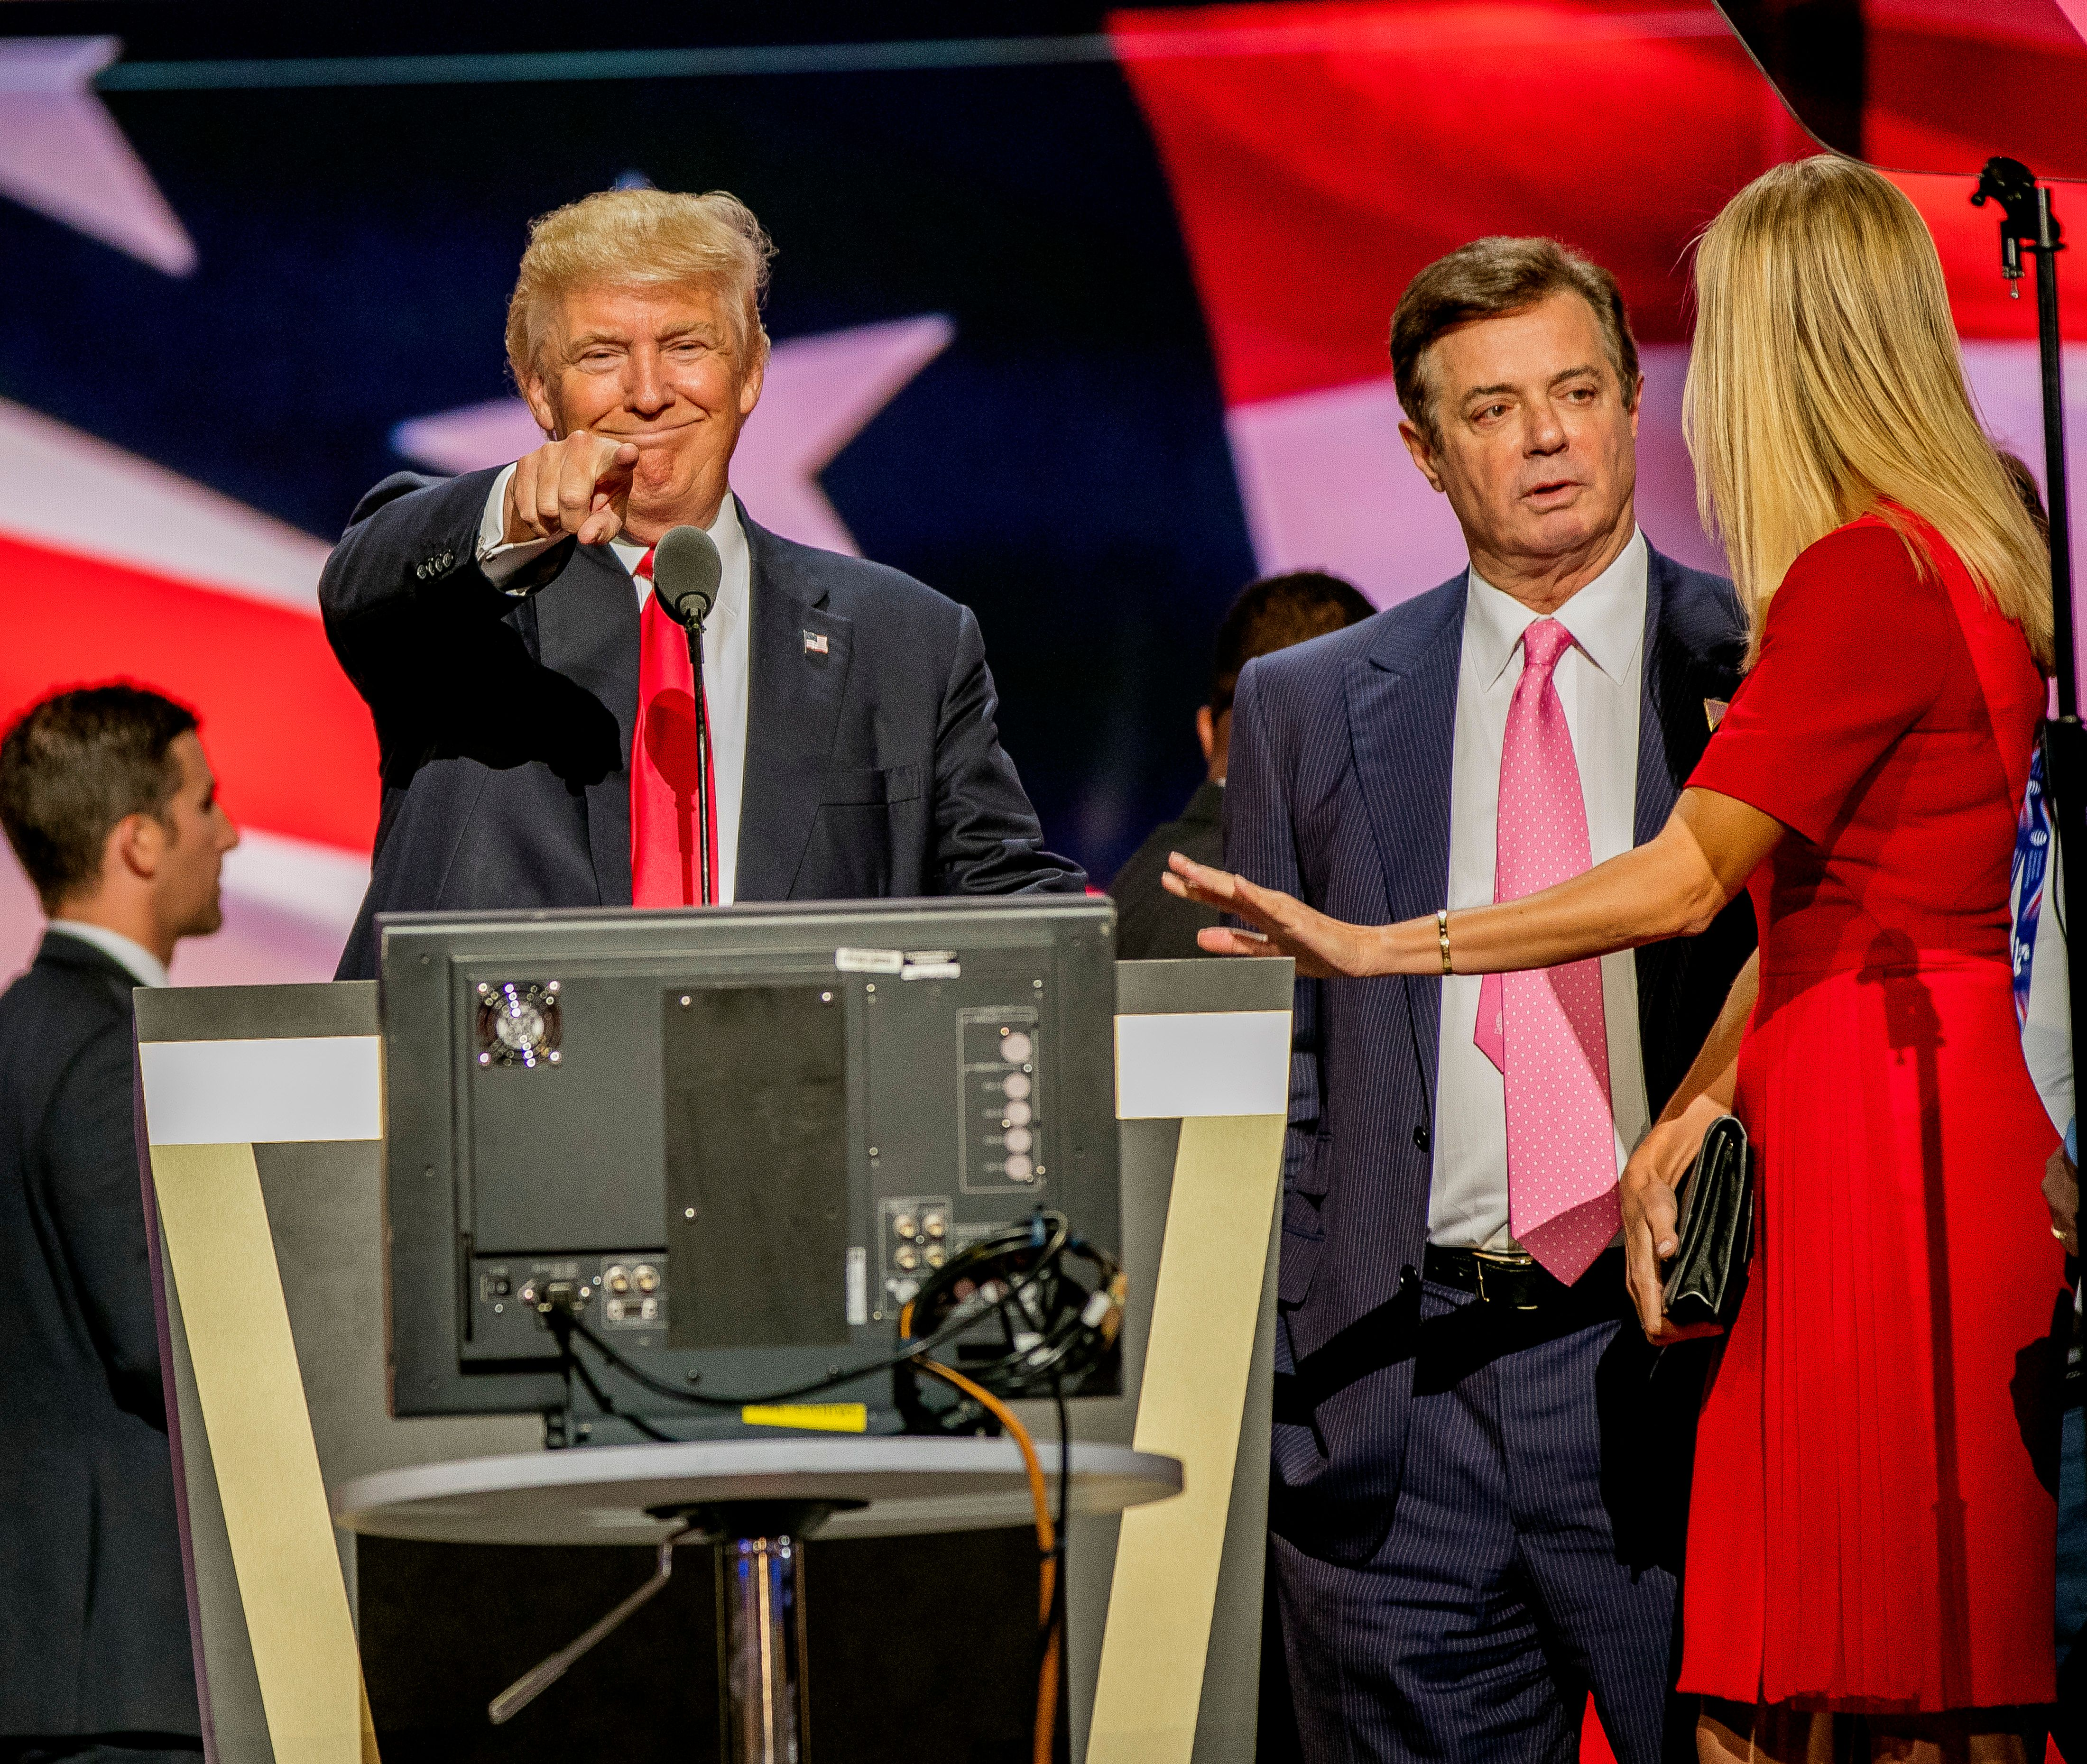 Paul Manafort stands between President Donald Trump and Ivanka Trump during a sound check at the Republican National Con